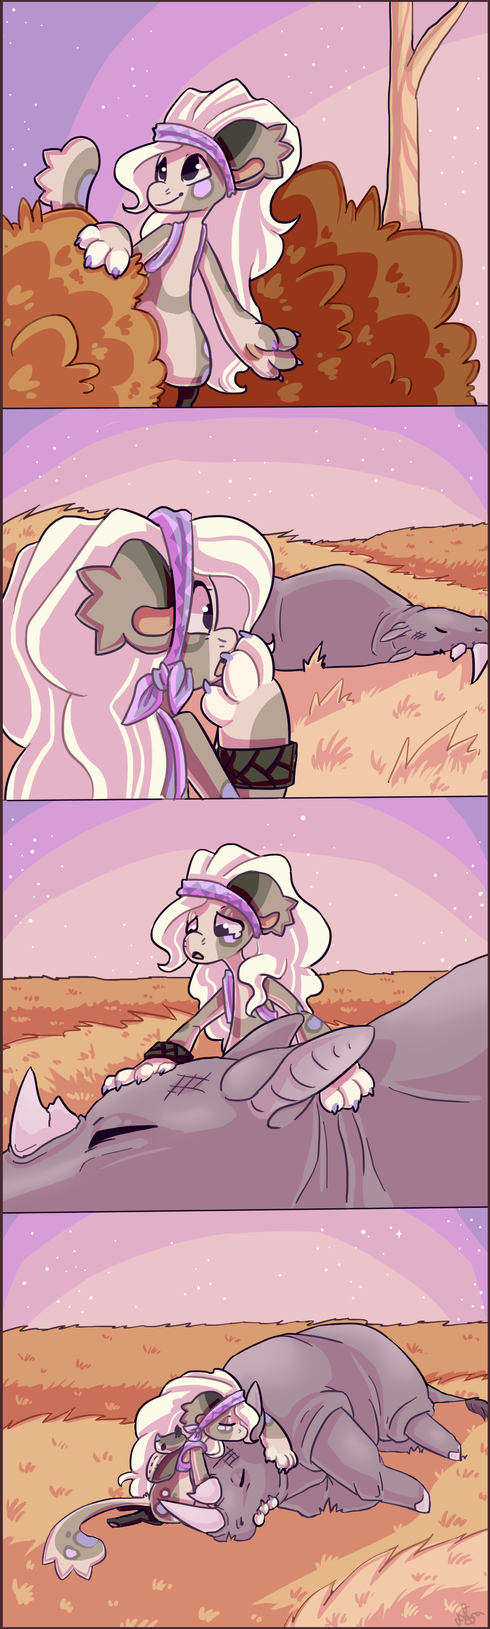 Life hurts a lot more than death by lalacat2000